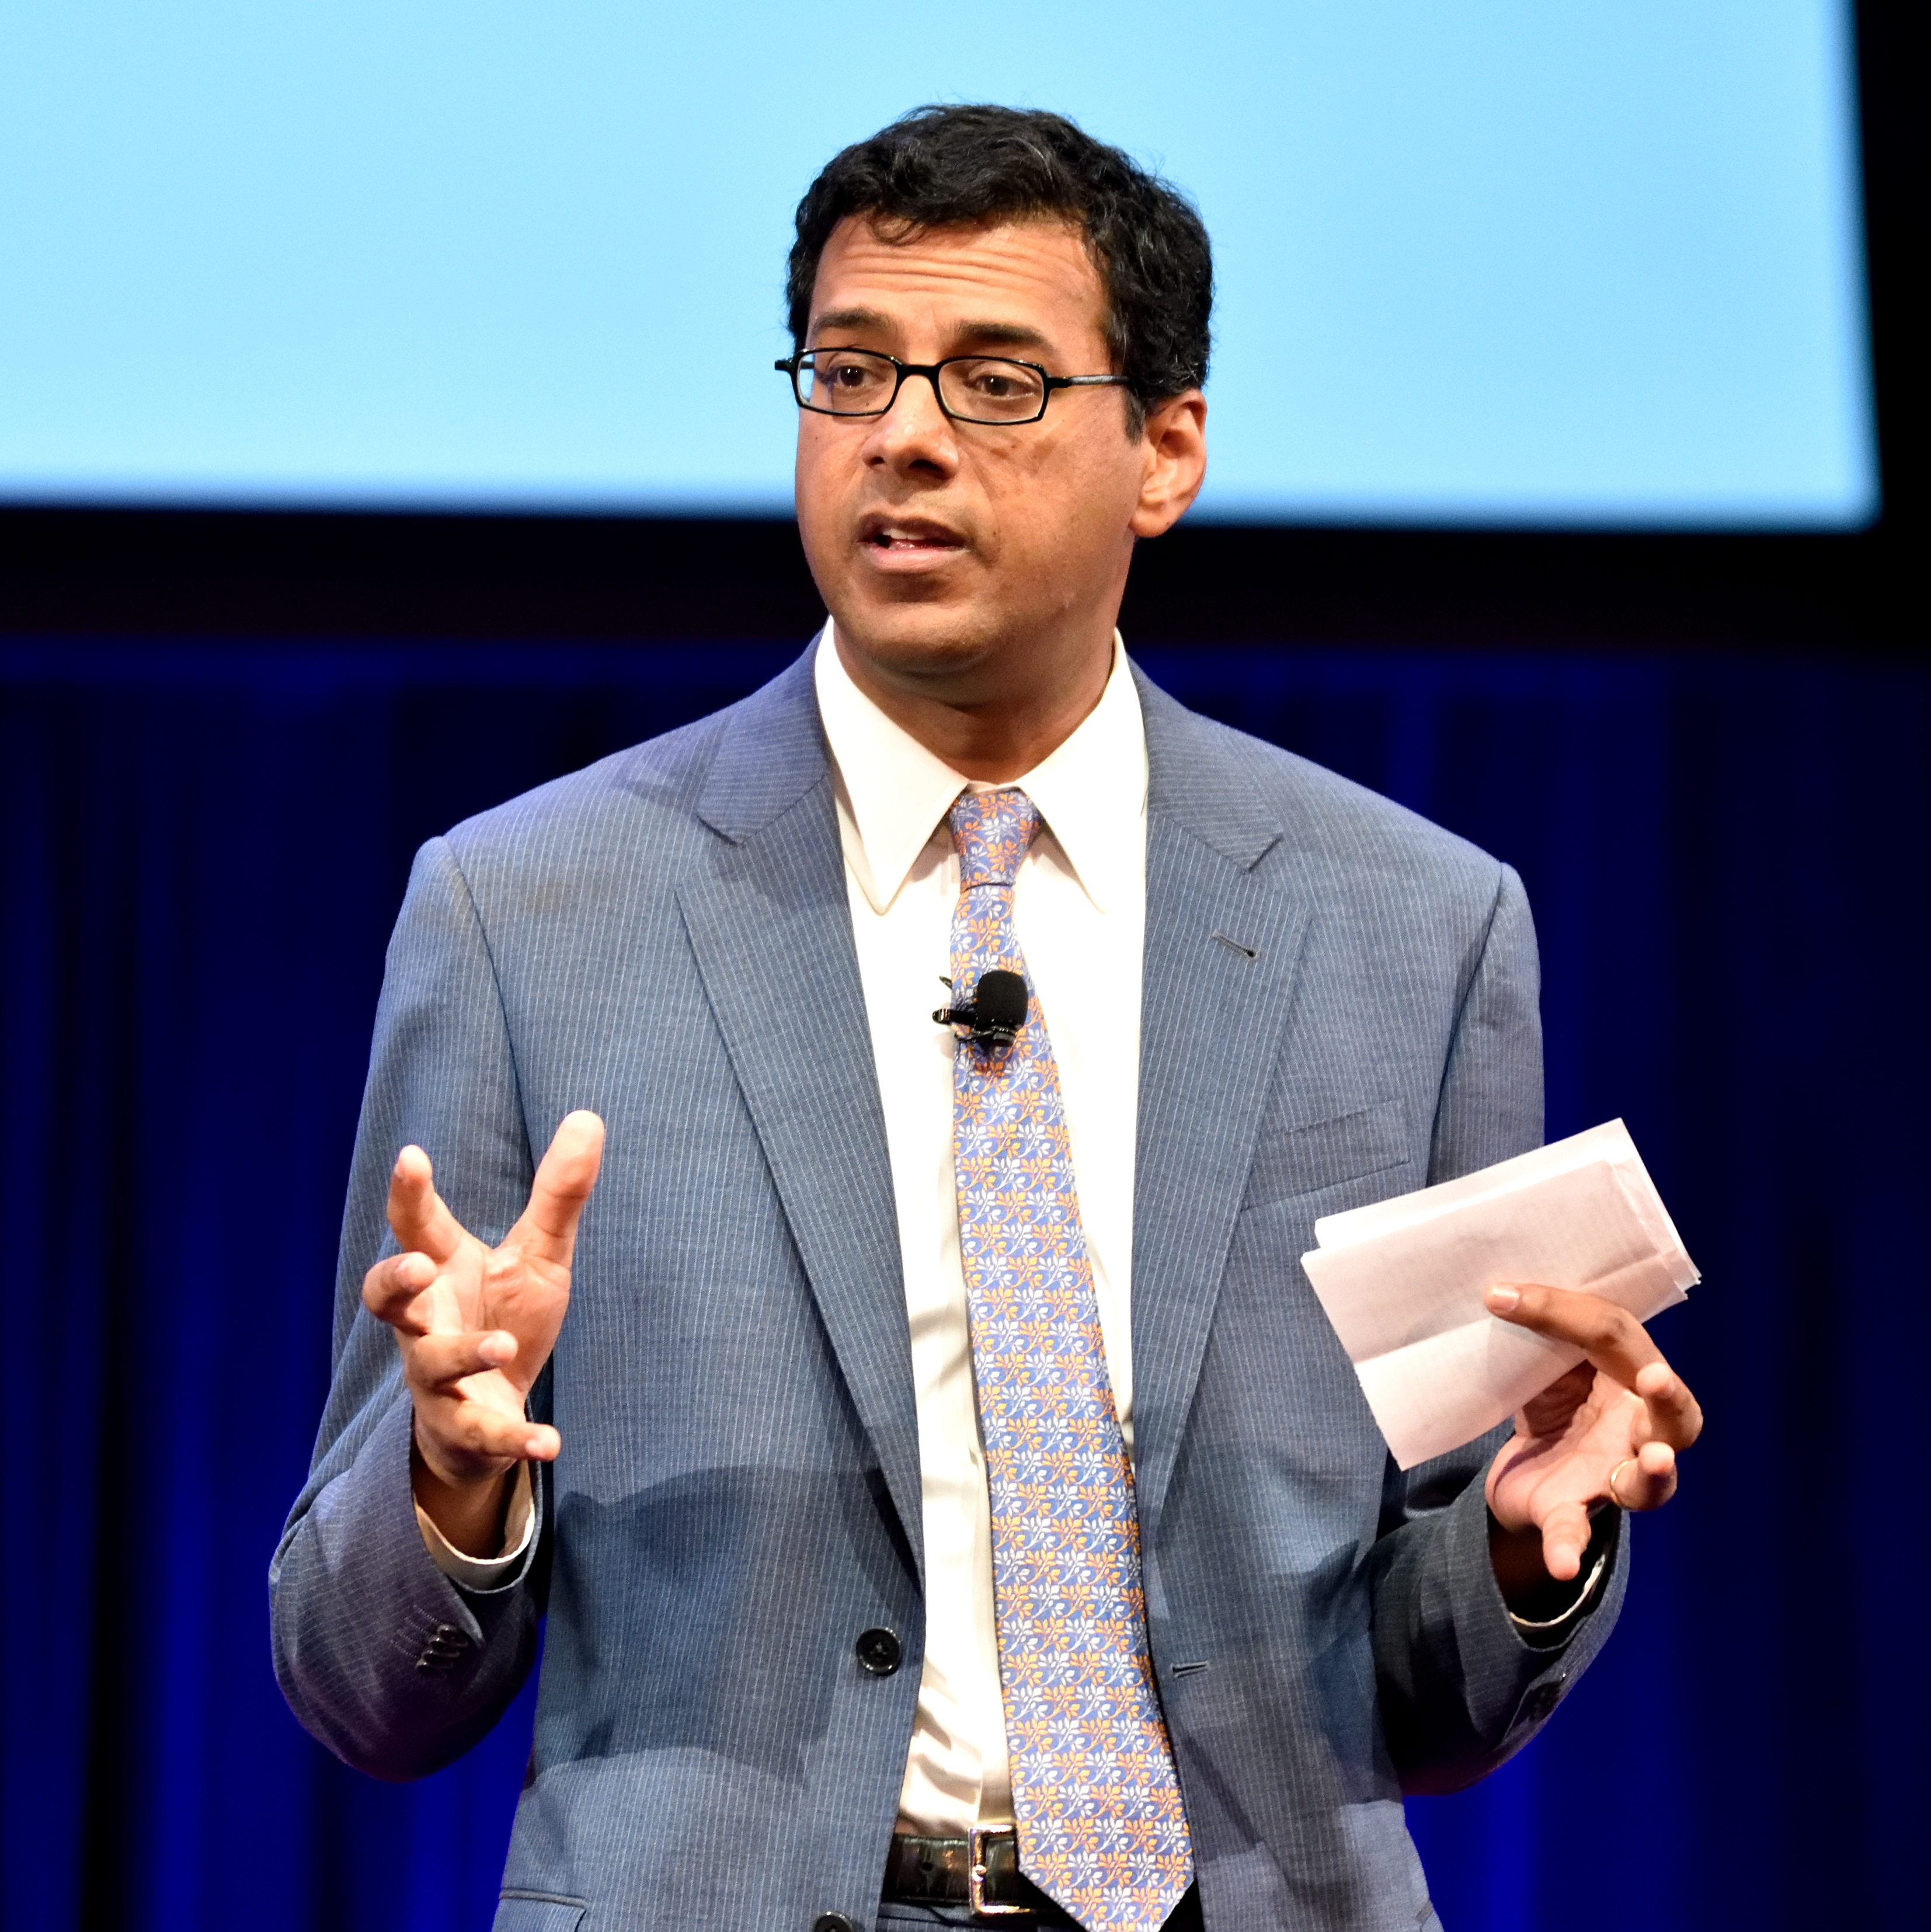 https://assets.sourcemedia.com/be/2f/7f759a424cecaed52ef9408d2cf4/donotuse.Atul%20Gawande2.jpg